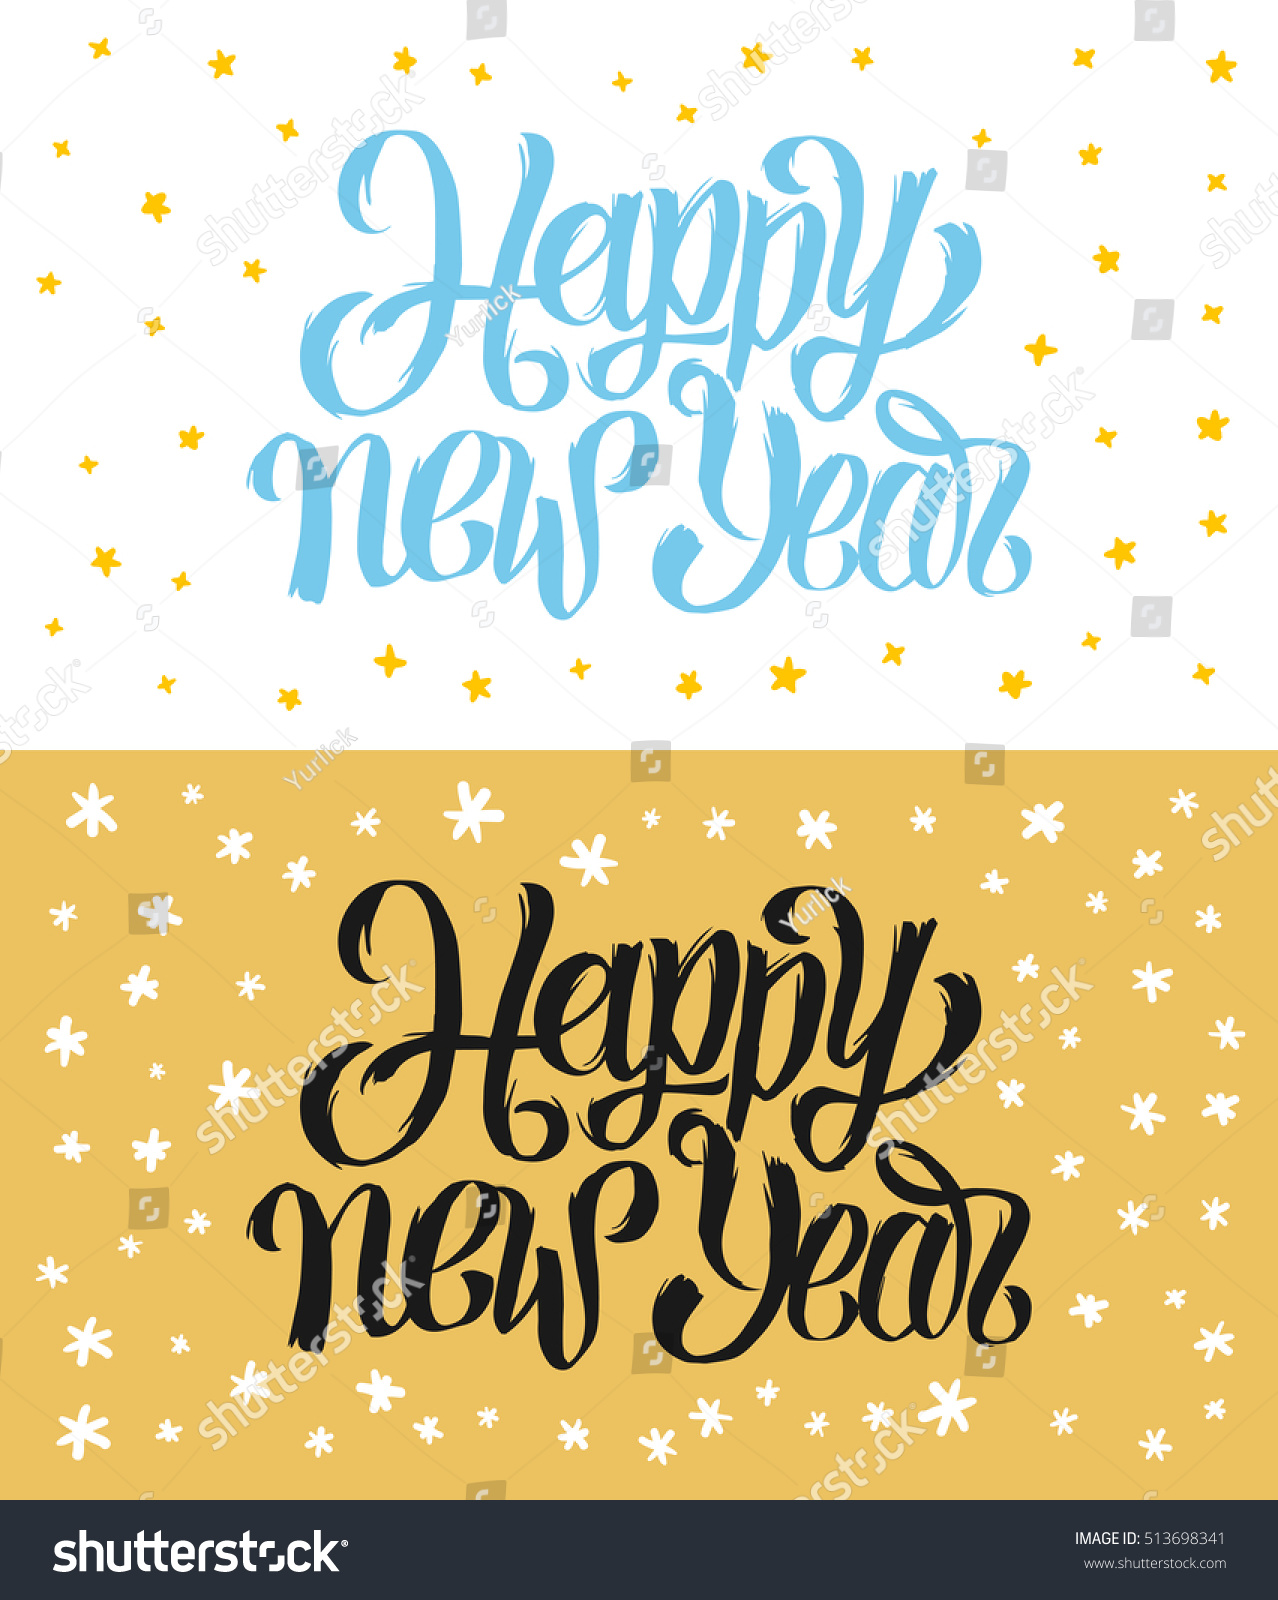 happy new year handwritten calligraphy greeting cards collection vintage banner or tag for 2017 year